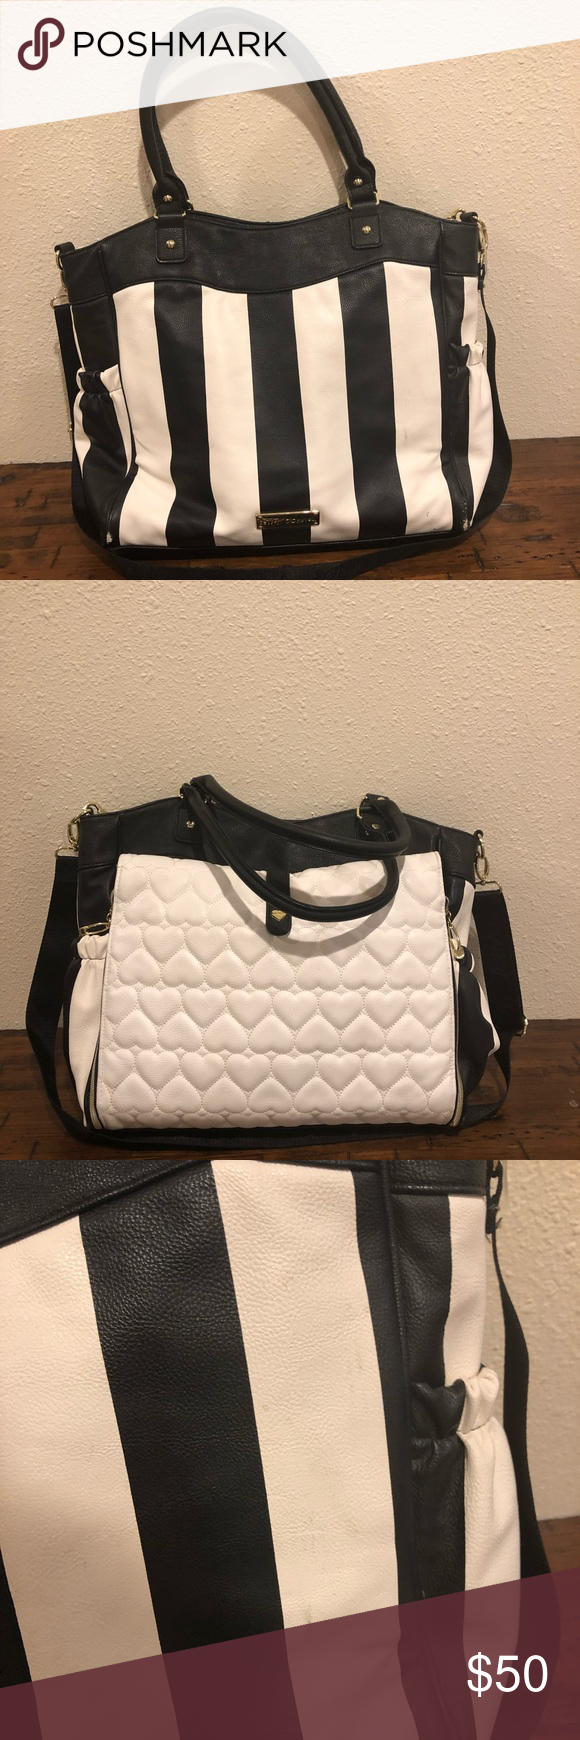 bd06403a34 Betsy Johnson diaper bag Used but good condition Some wear on bottom  corners as well as